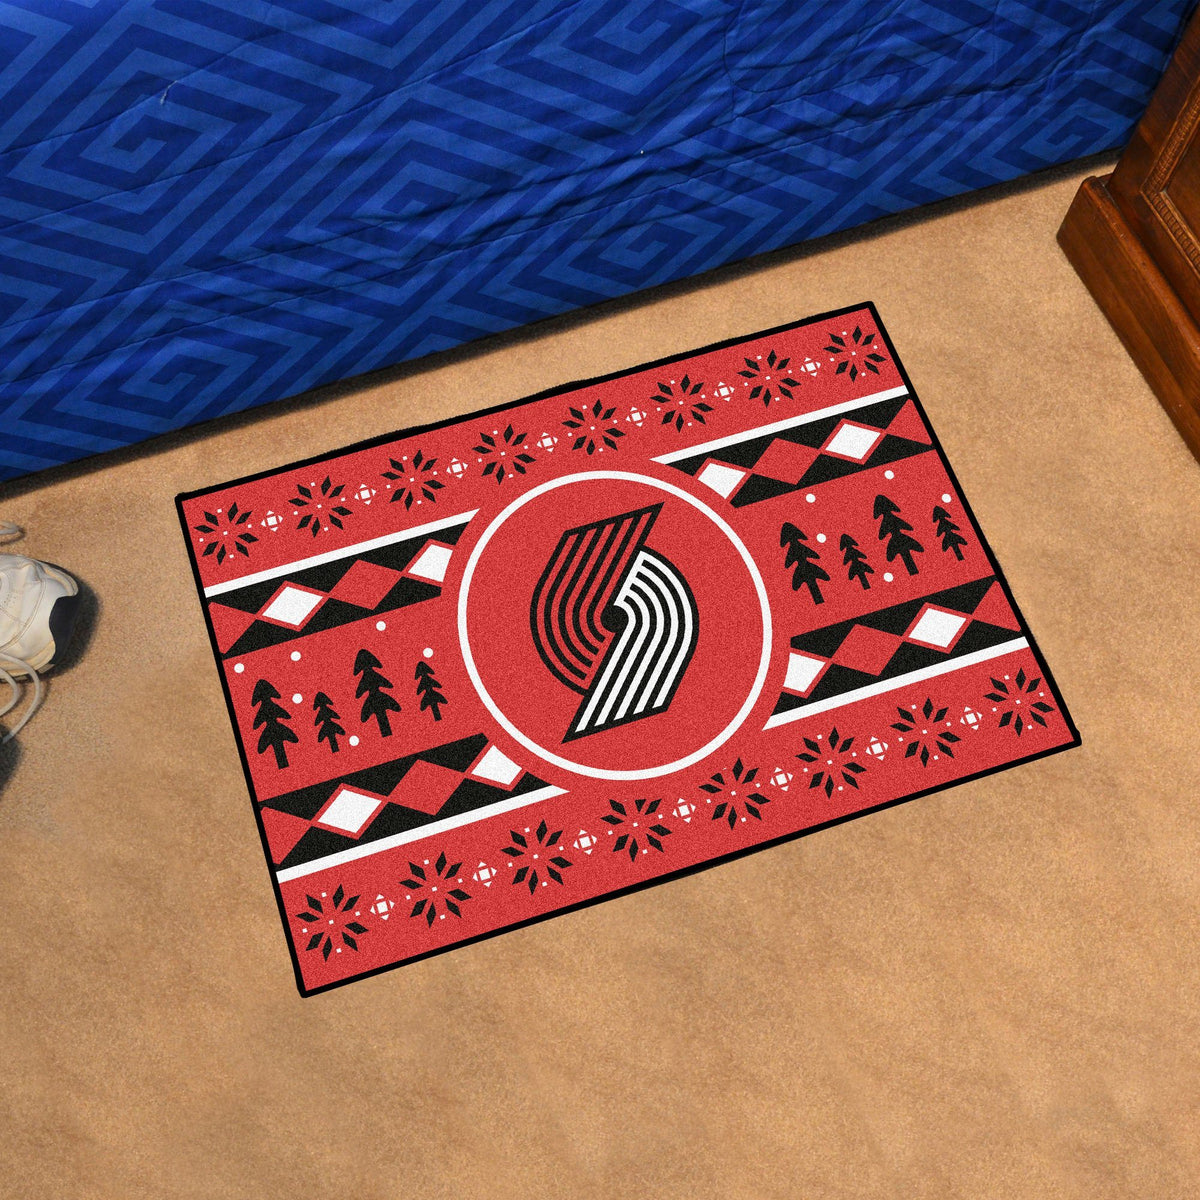 NBA - Holiday Sweater Starter Mat NBA Mats, Rectangular Mats, Holiday Sweater Starter Mat, NBA, Home Fan Mats Portland Trail Blazers